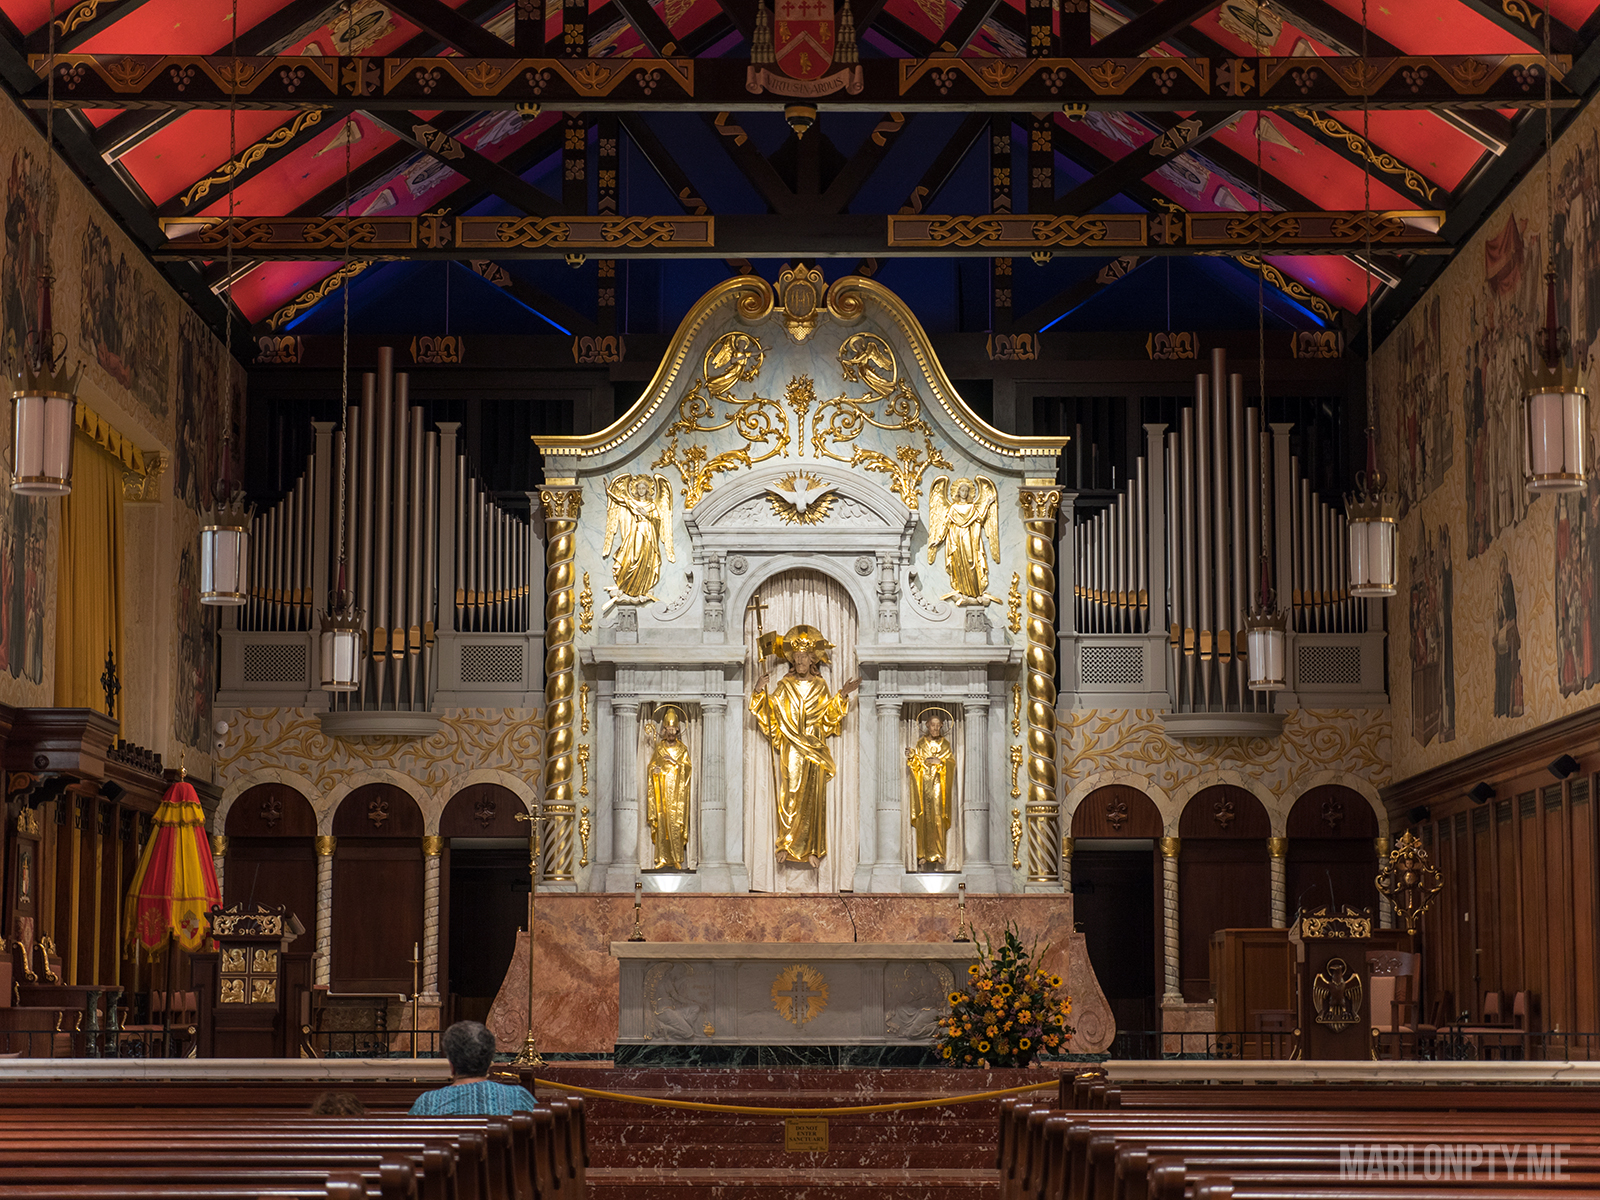 cathedral_staug_1.jpg